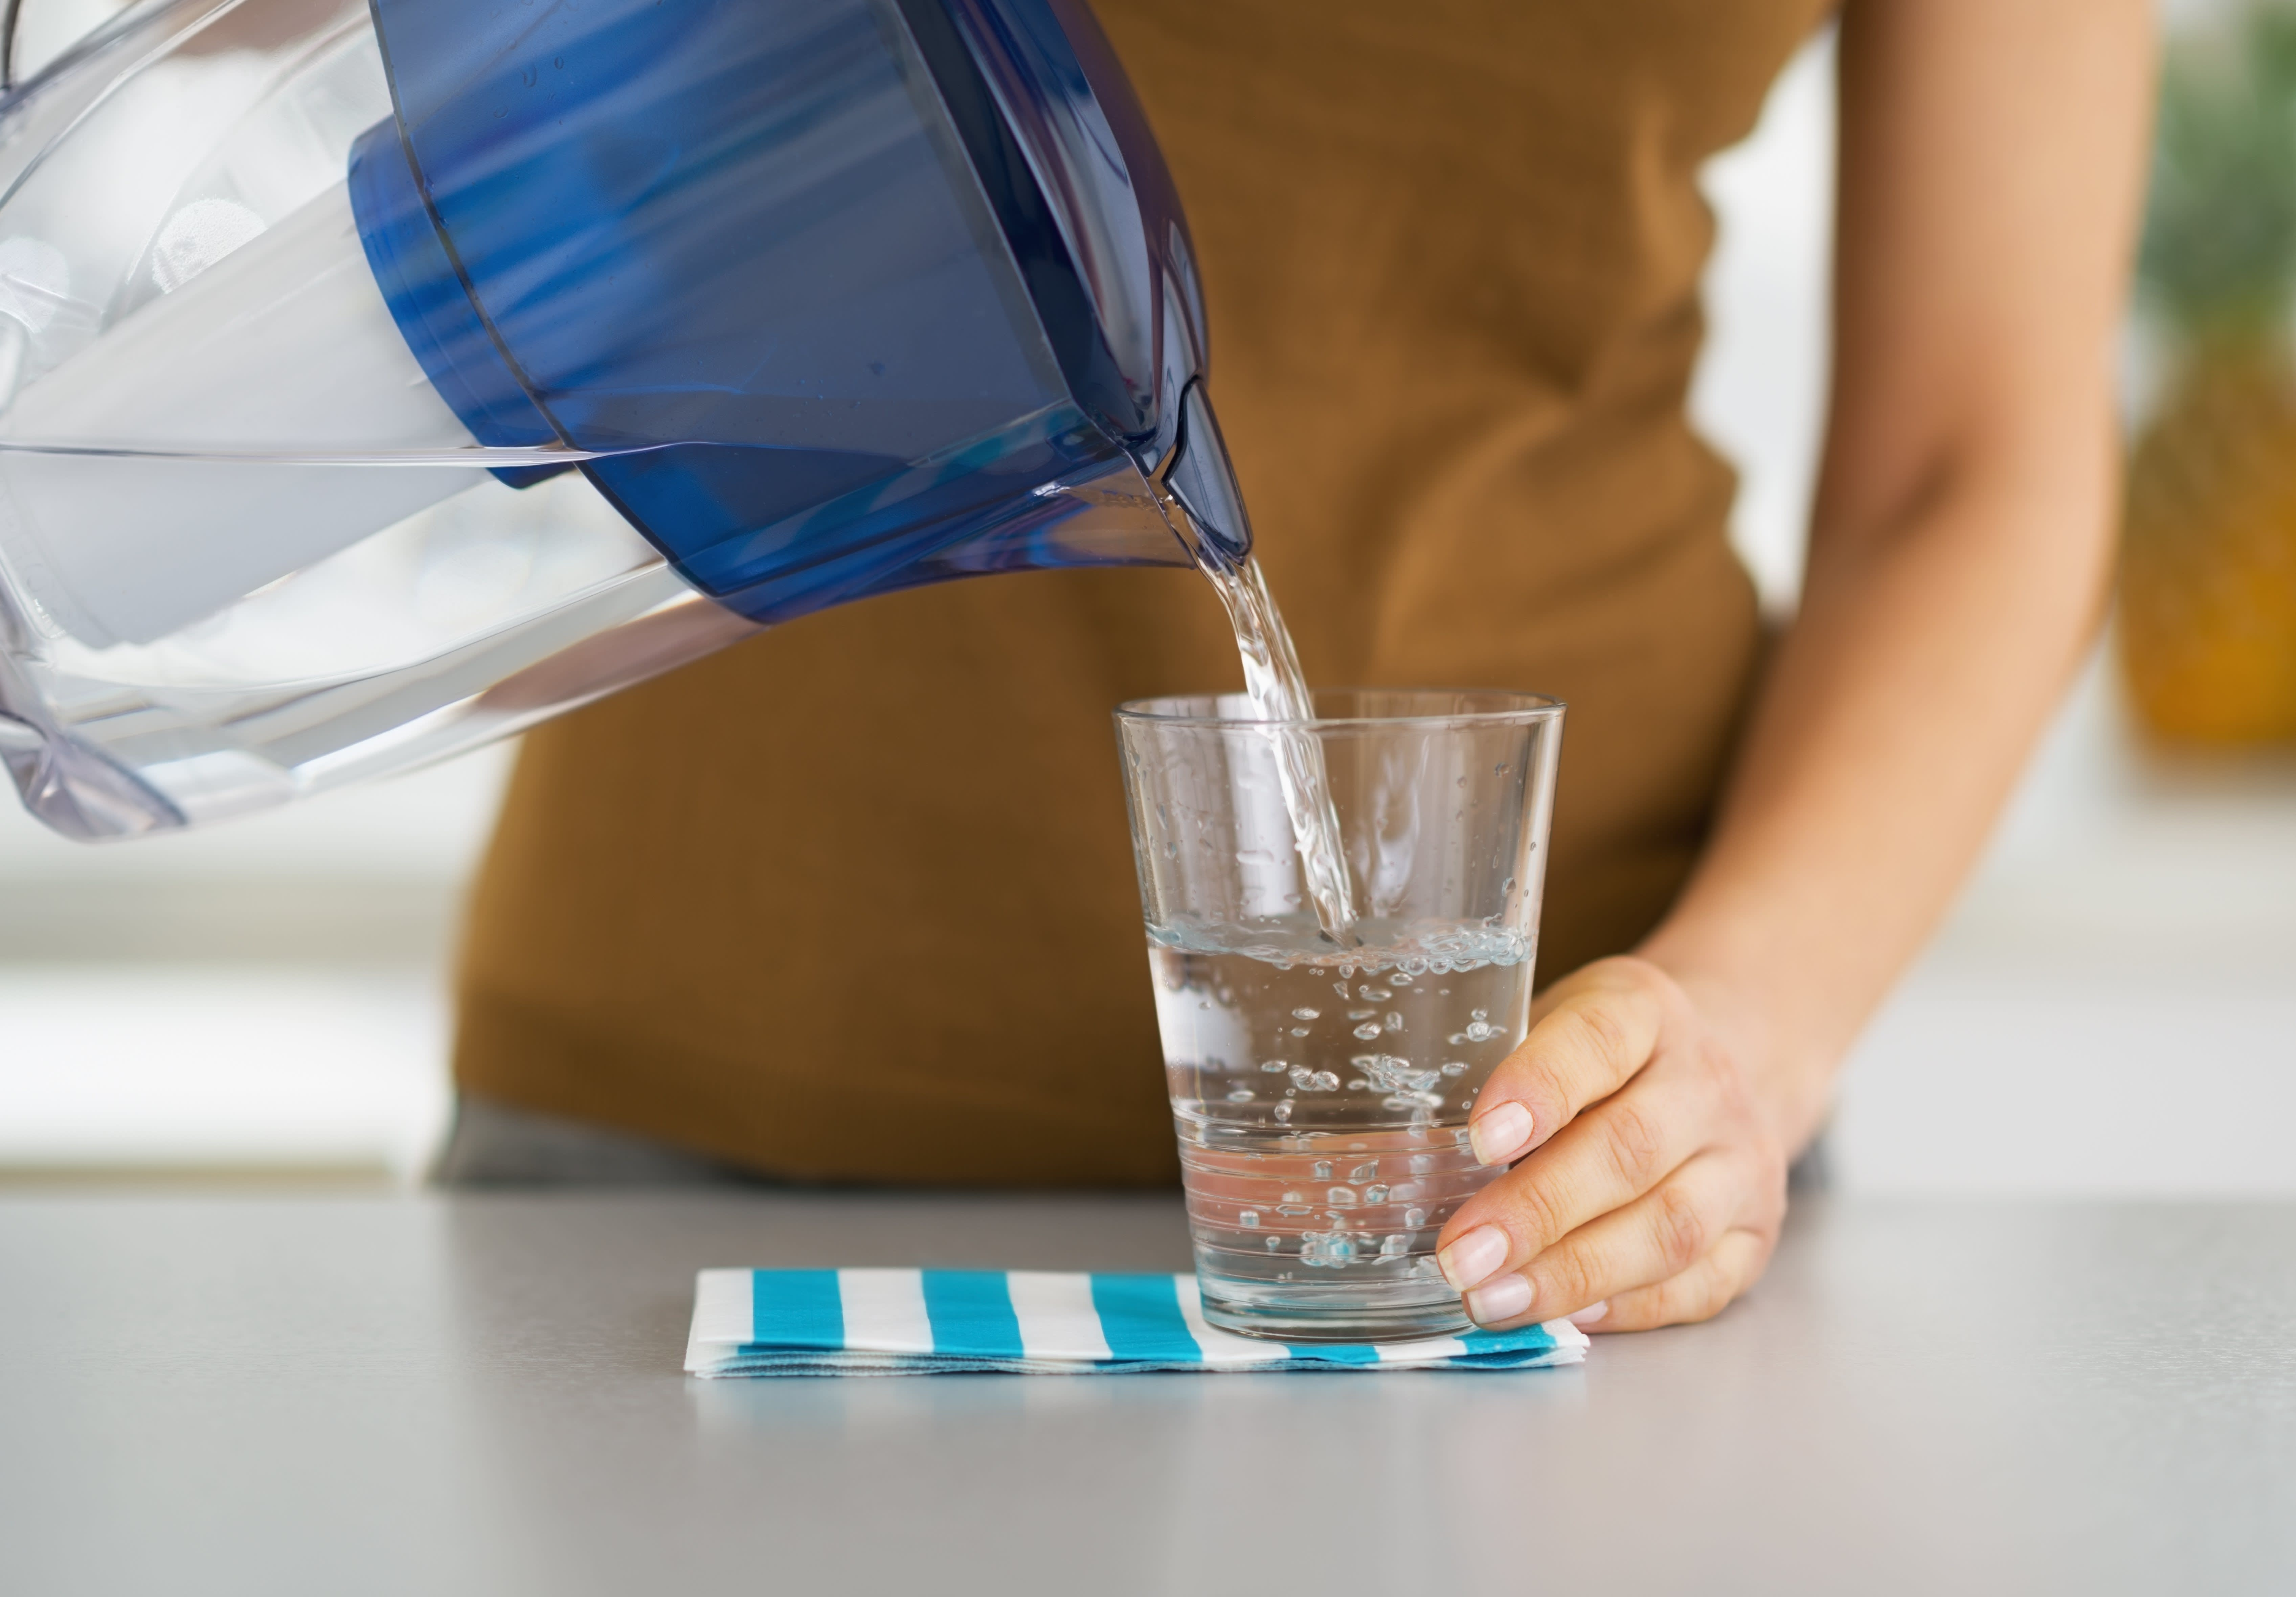 Pouring a Glass of Water from a Pitcher